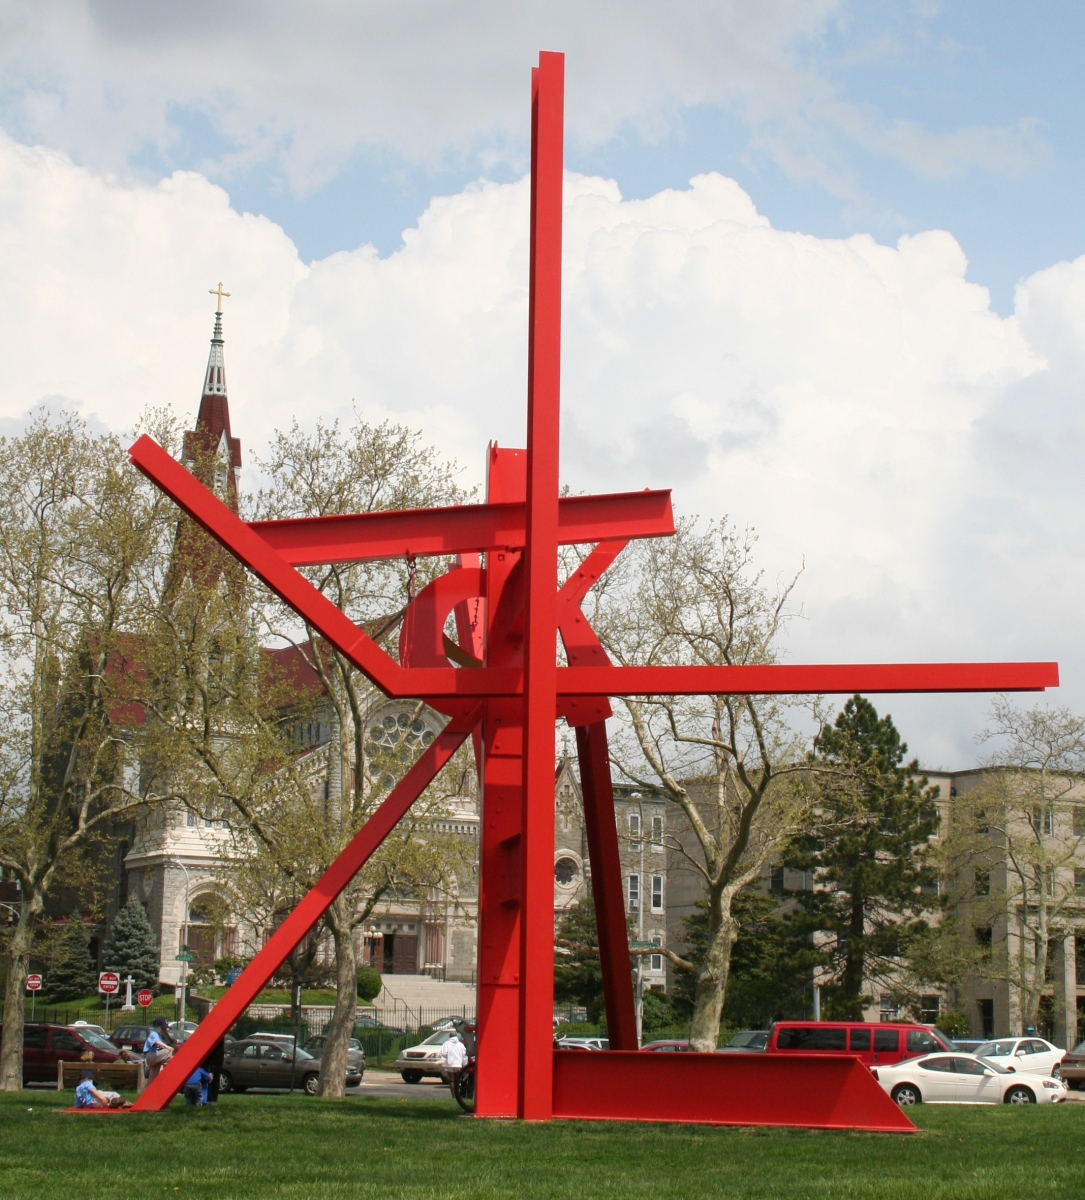 Iroquois By Mark di Suvero